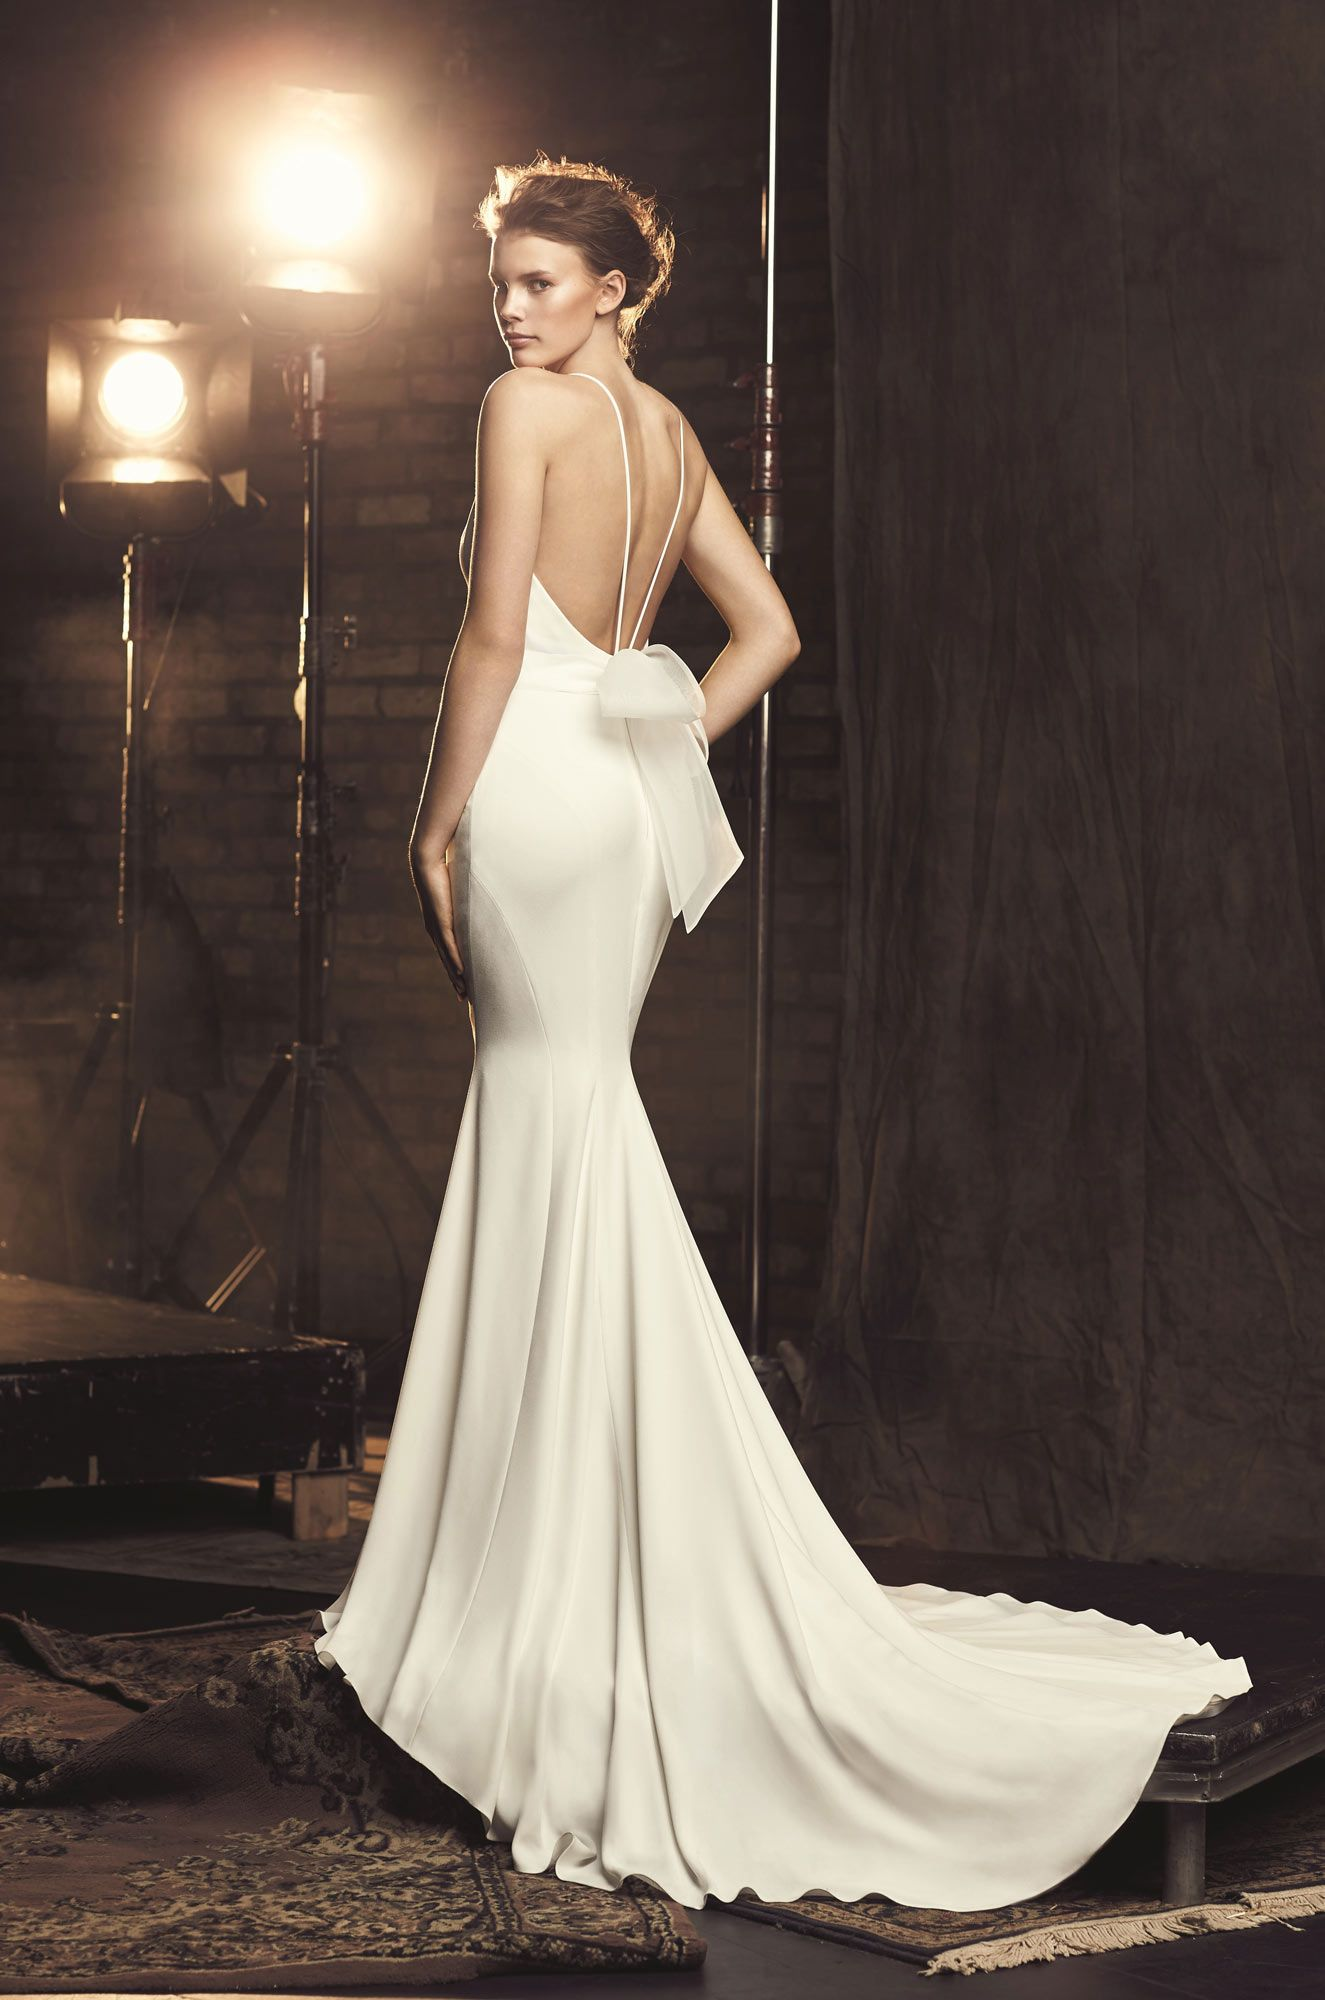 Mikaella 2090 Find Gown De Ma Fille Bridal In Ft Worth TX 8179212964 Demafille